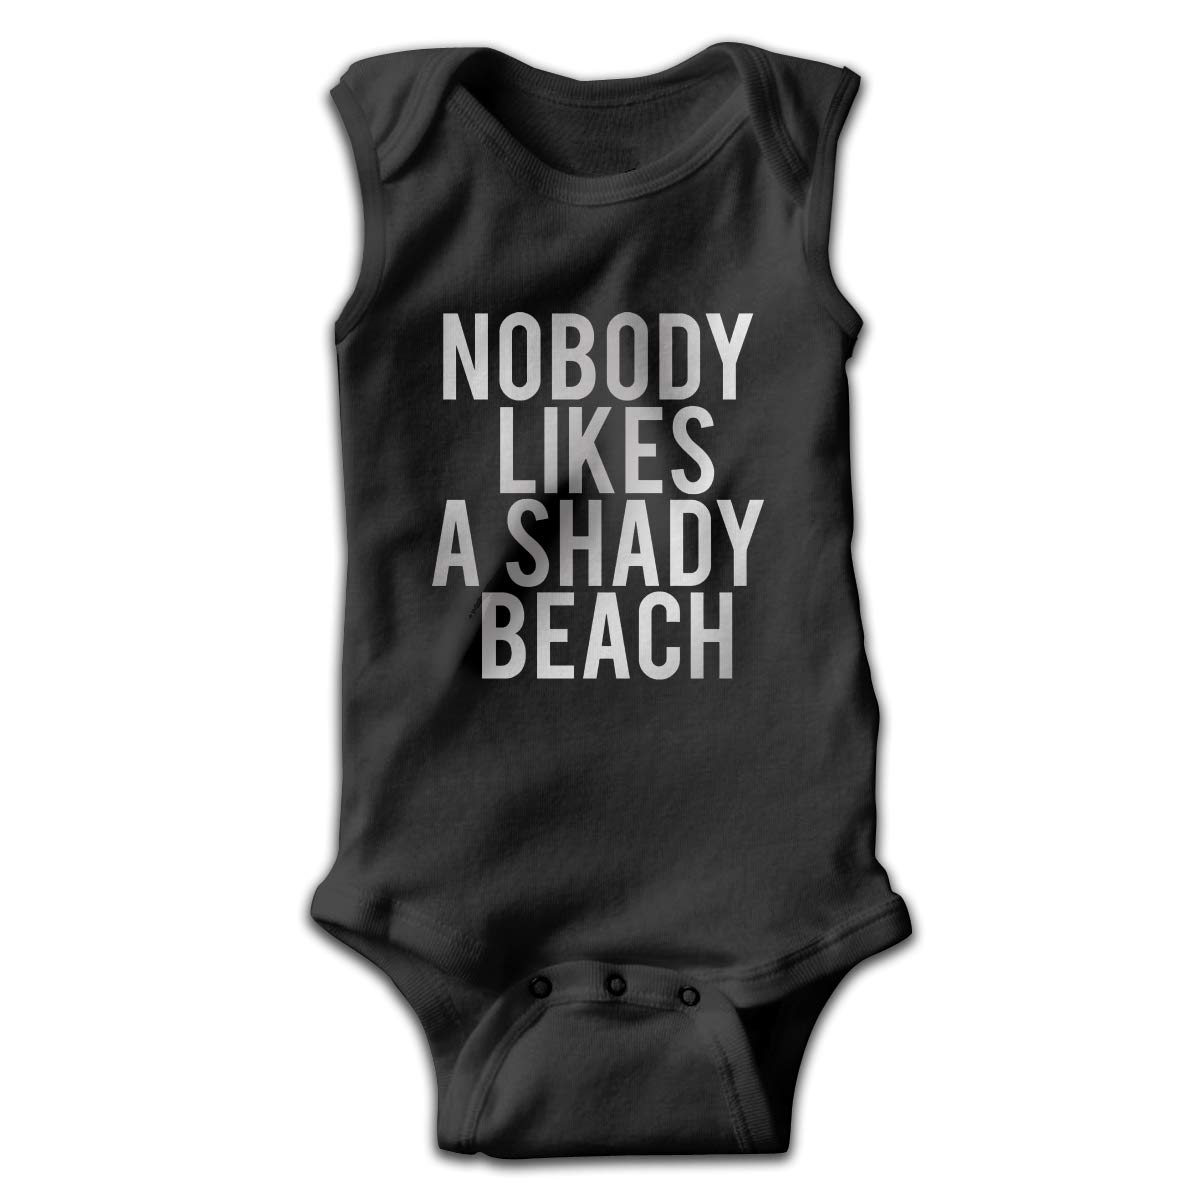 Efbj Toddler Baby Boys Rompers Sleeveless Cotton Jumpsuit,Nobody Likes A Shady Beach Outfit Winter Pajamas